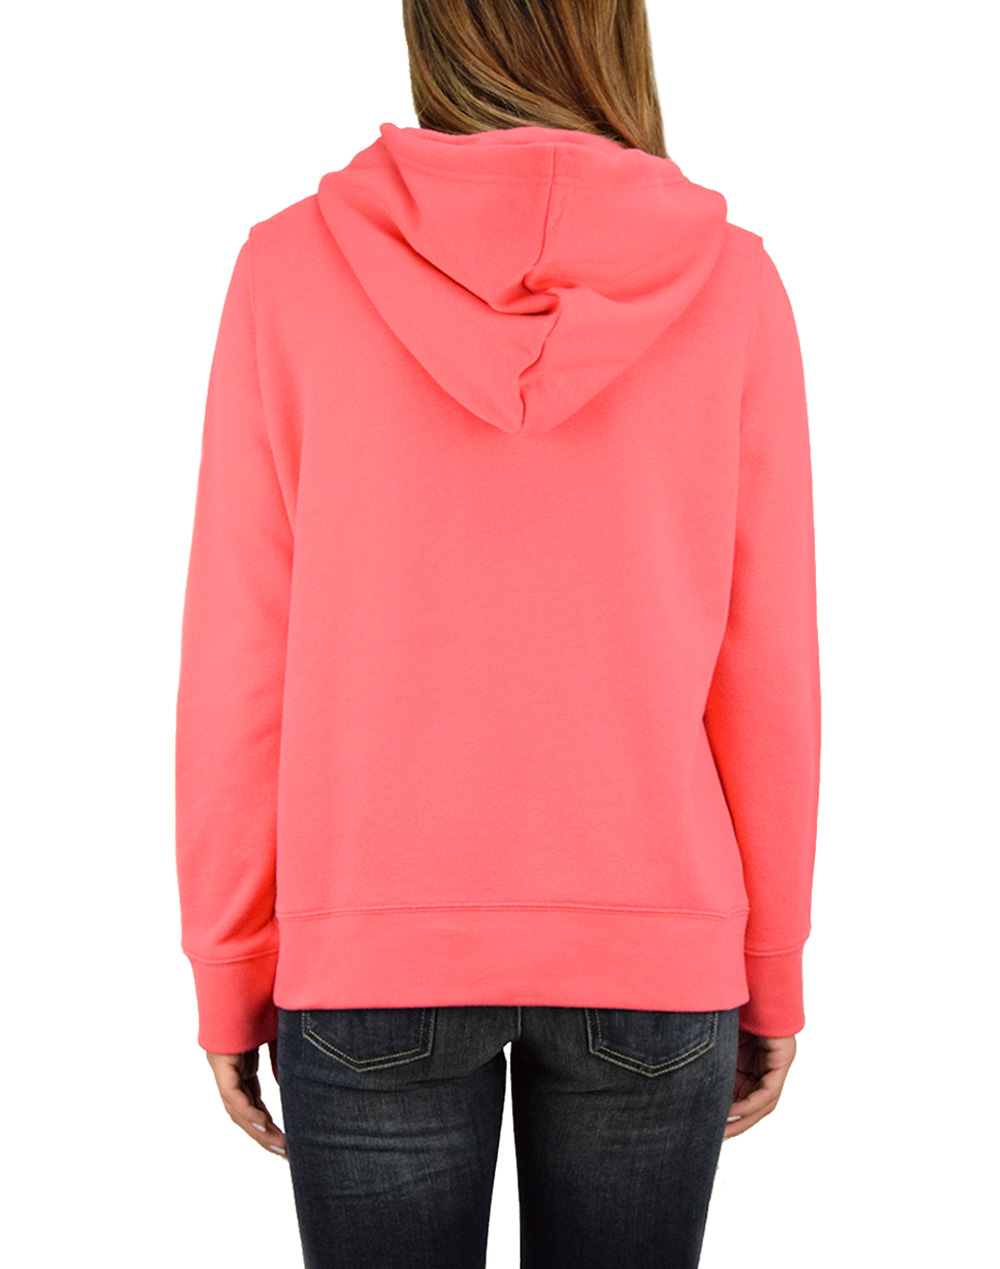 677ce3f67e15 Adidas Trefoil Hoodie Core Pink (DH3136)